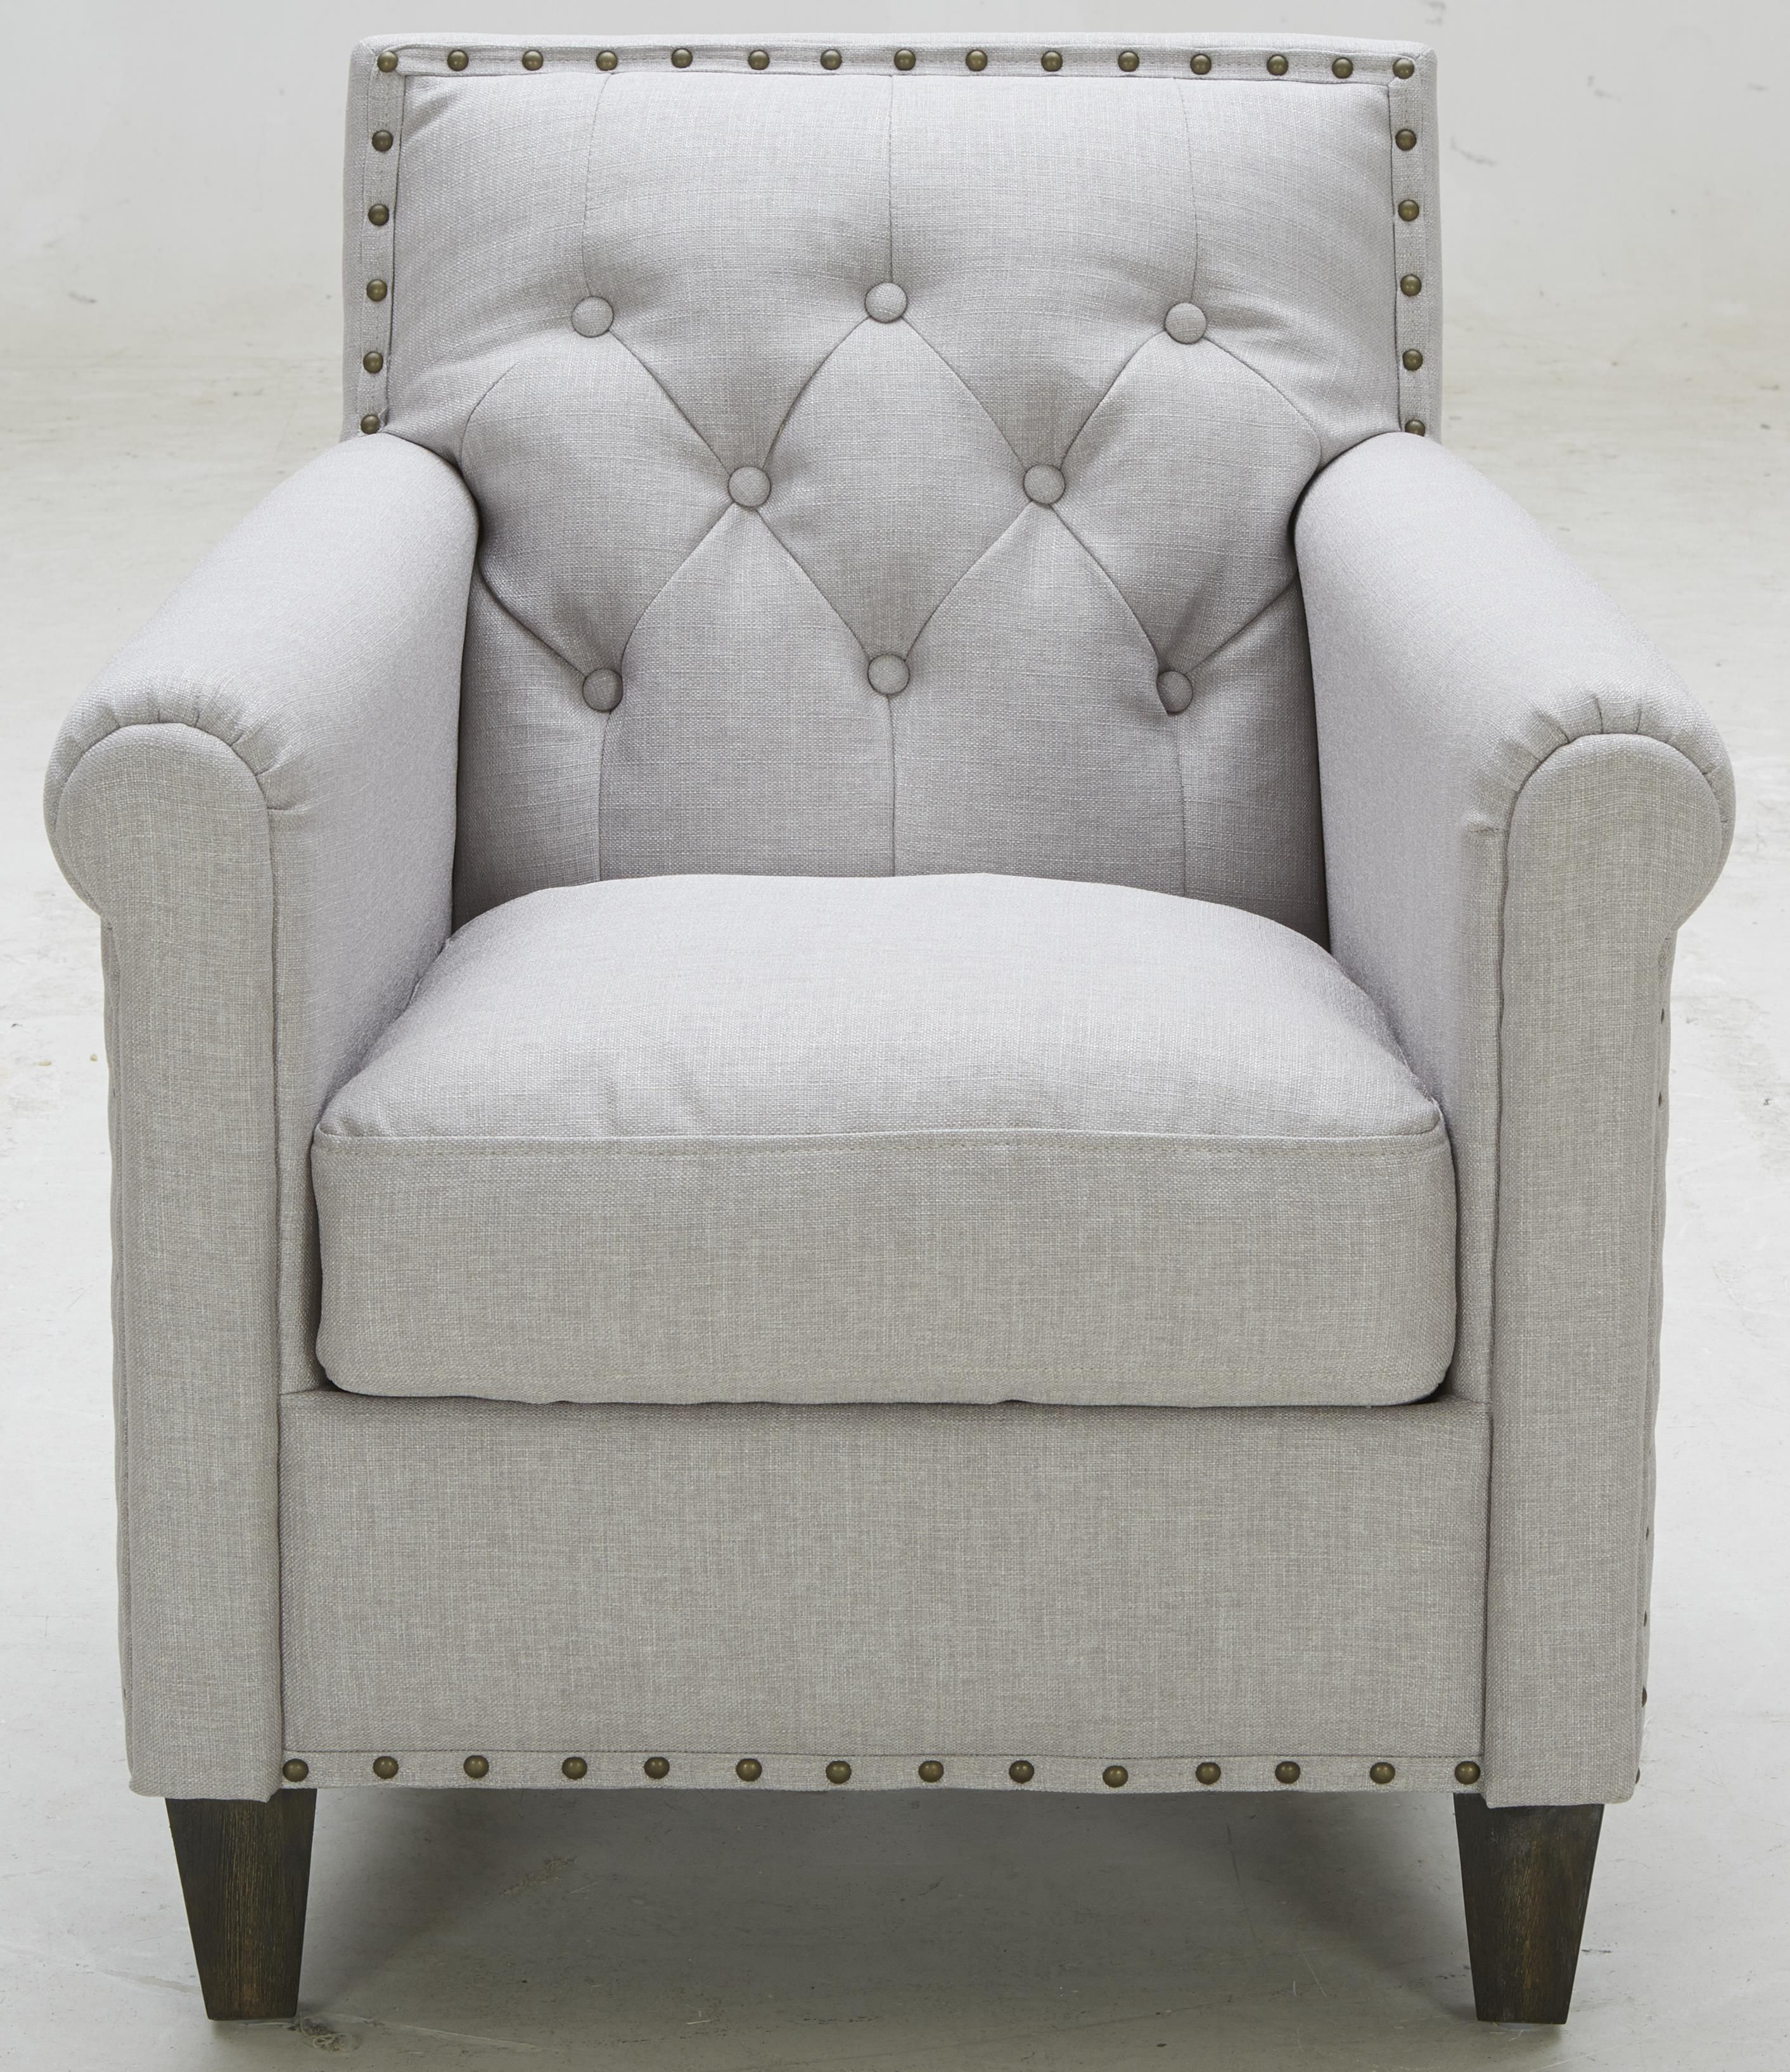 A 655 Tufted Chair by Kuka Home Dining Room